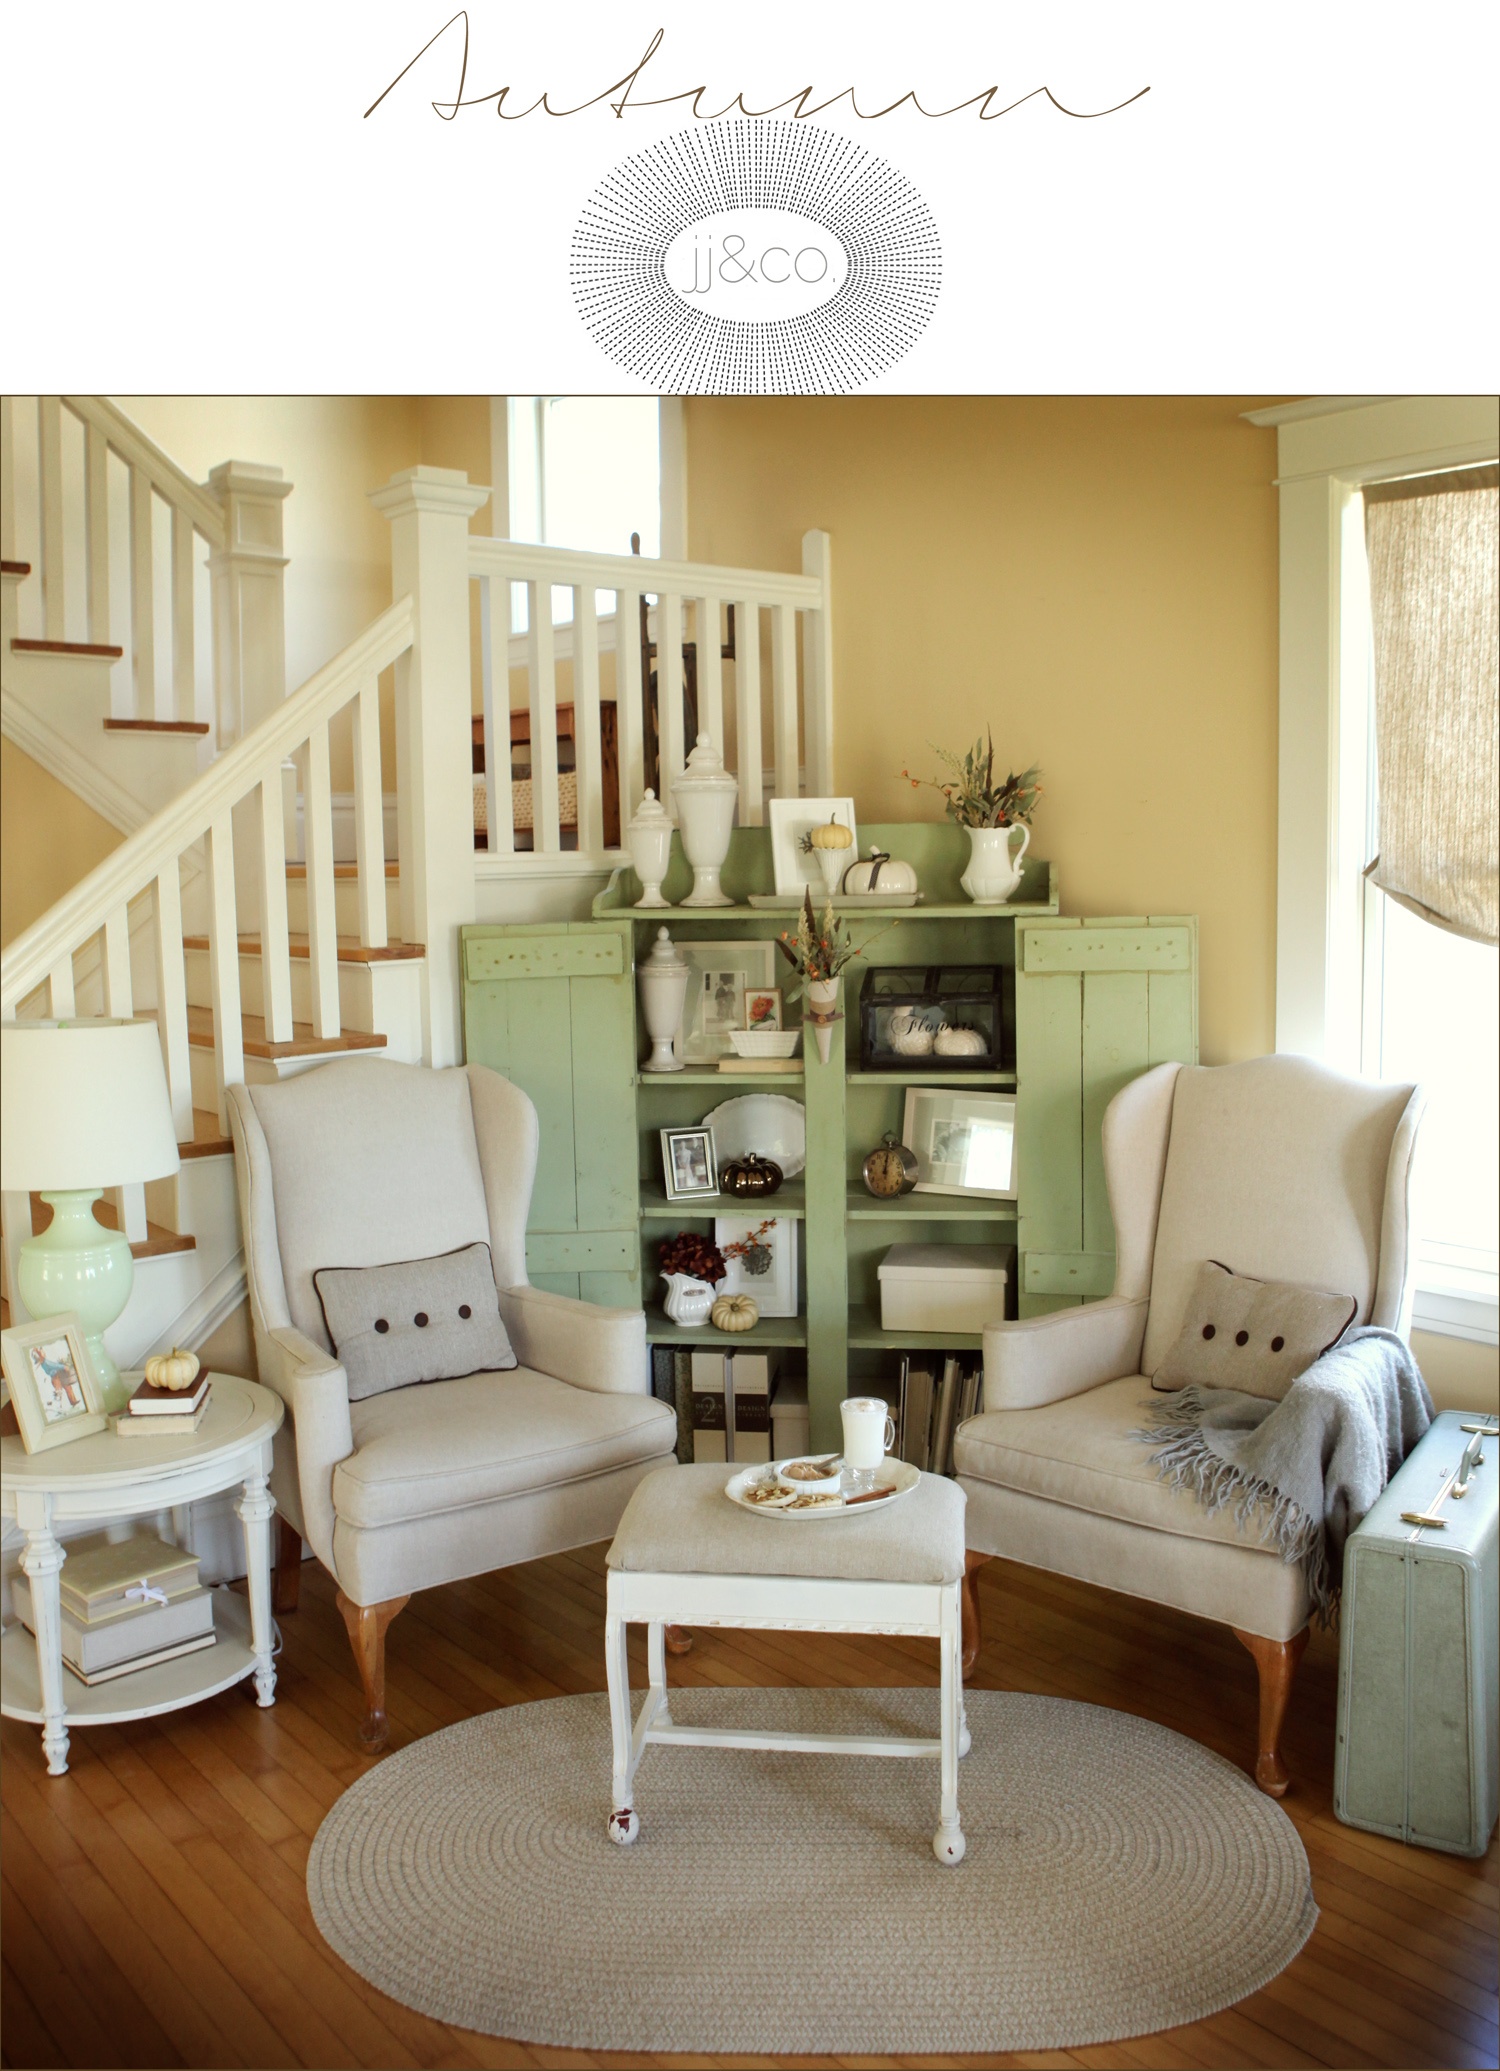 Autumn Living Room Decorating: An Autumn Living Room, Before And After